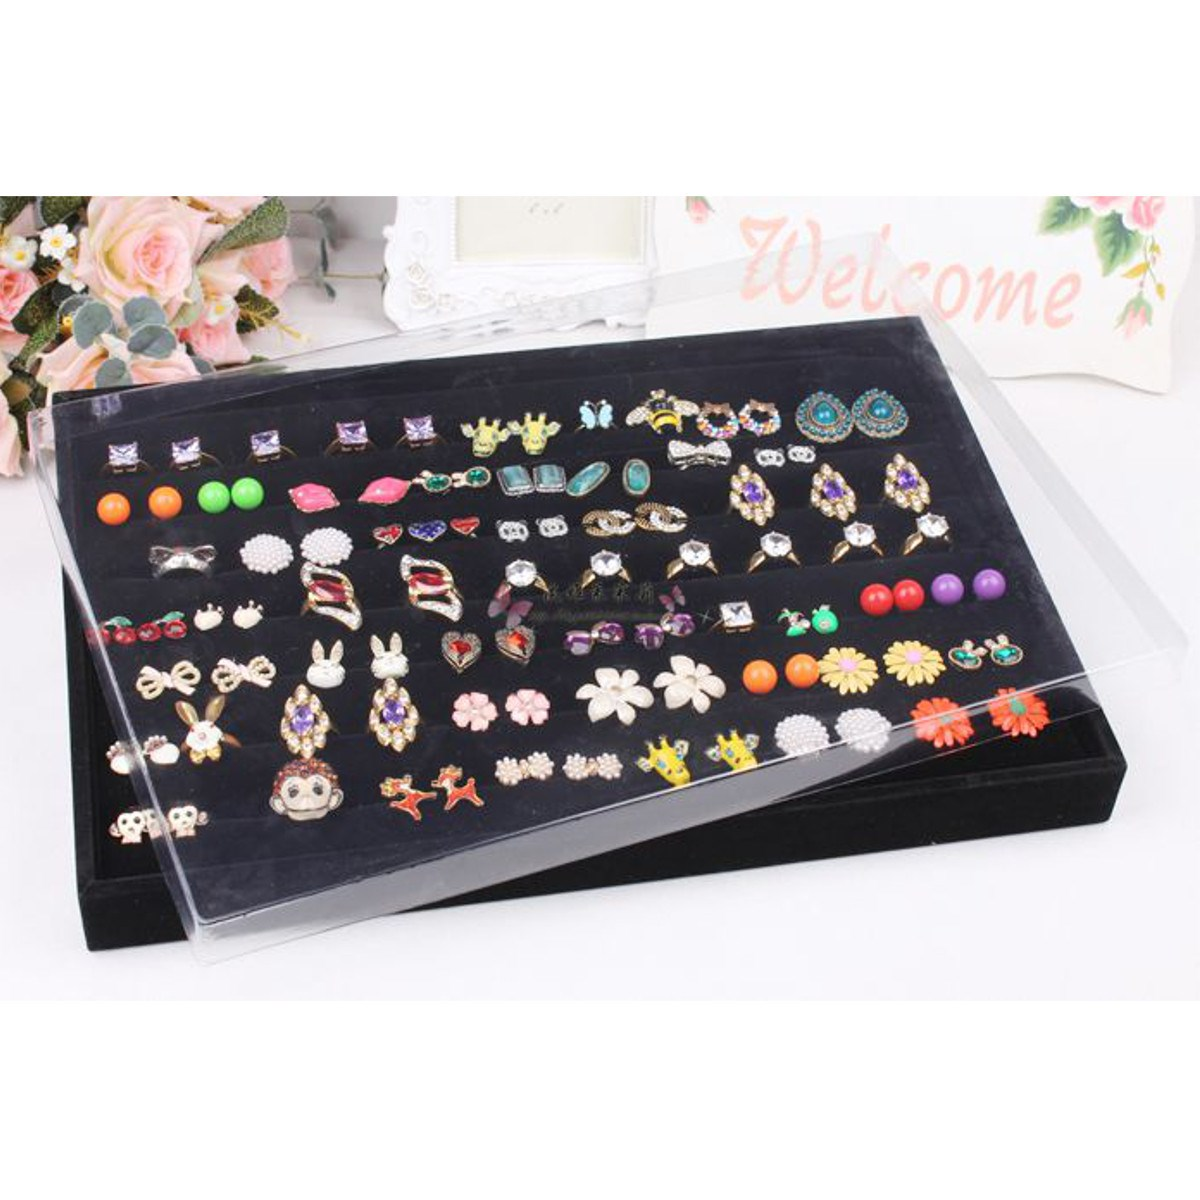 2017 New Jewelry Organizer 35*24*3cm Anti Dust Cover To Cover Jewelry Display Case Tray For Ring Earring Necklace Bracelet Watch(China (Mainland))